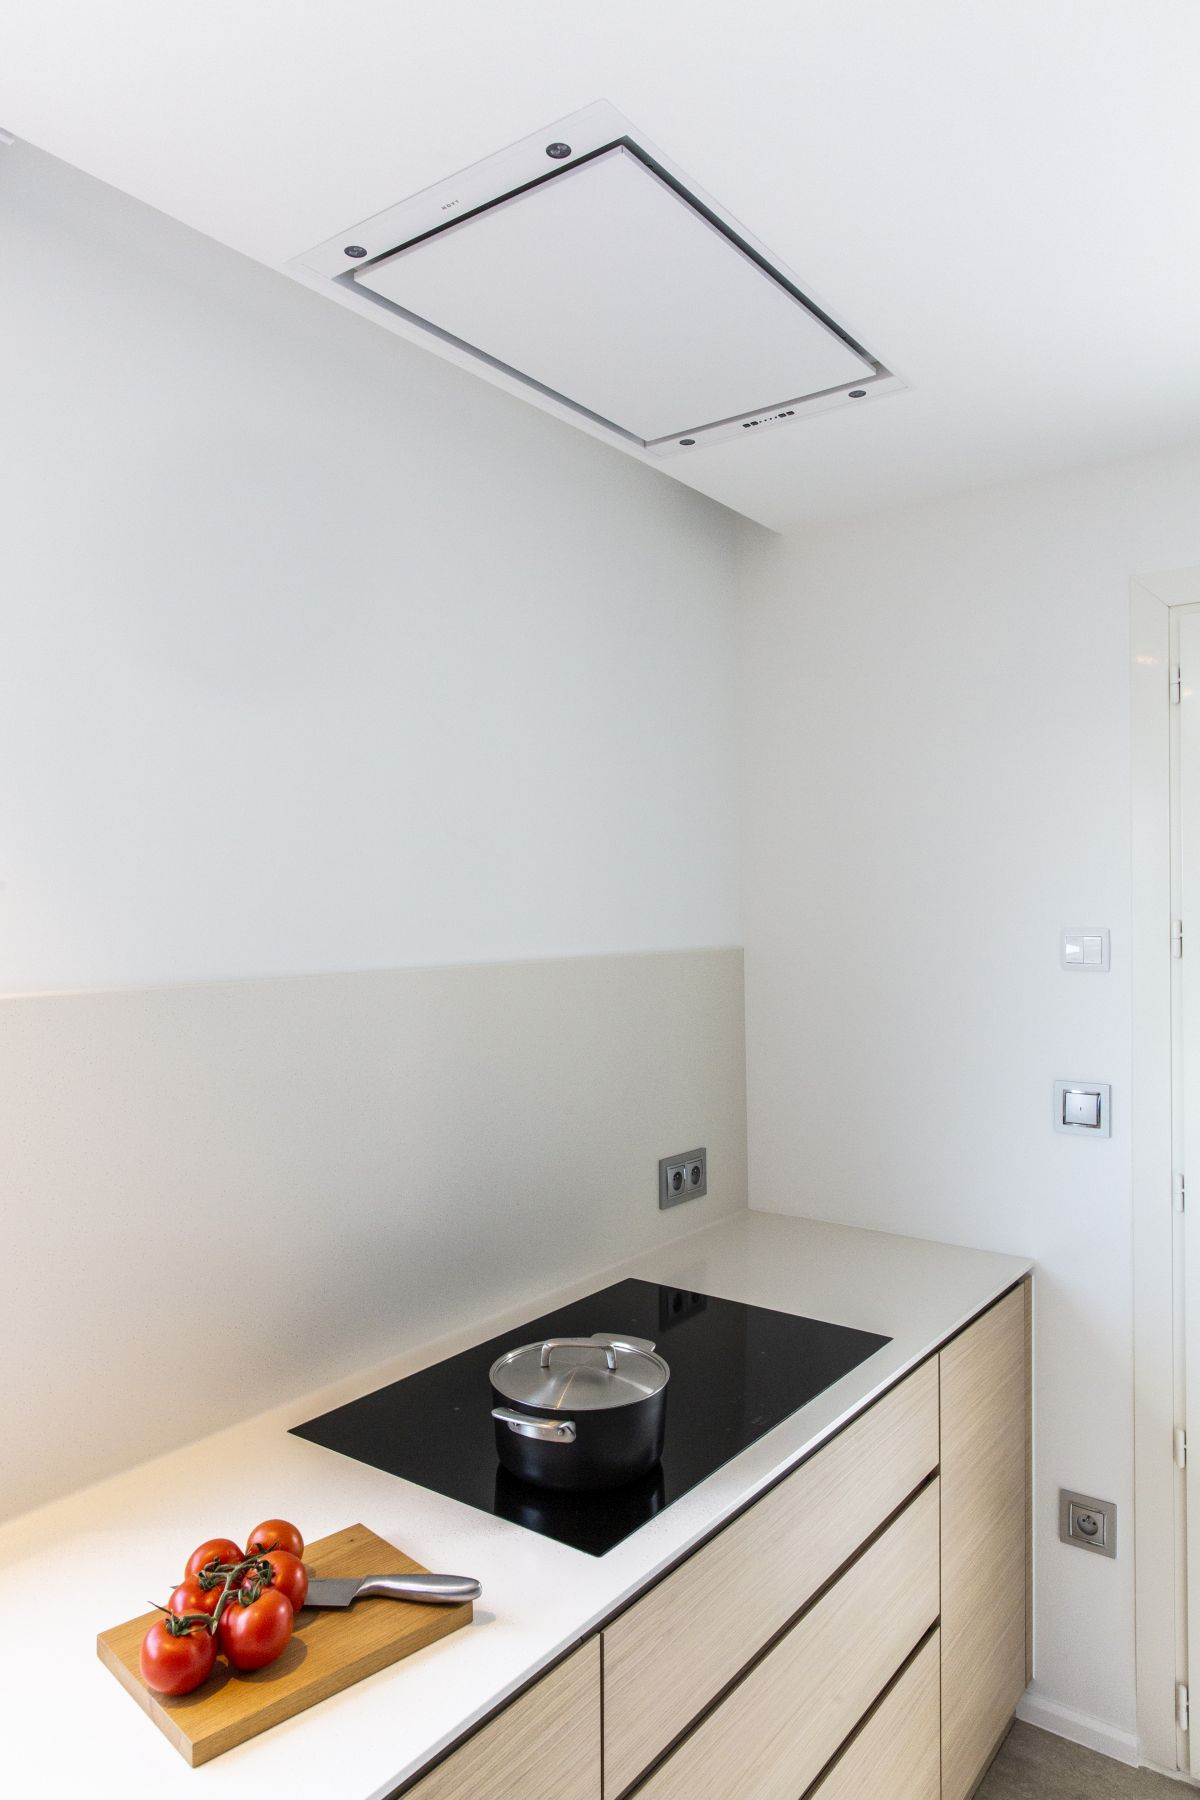 The exhaust hood is neatly incorporated into the ceiling and looks very sleek and simple